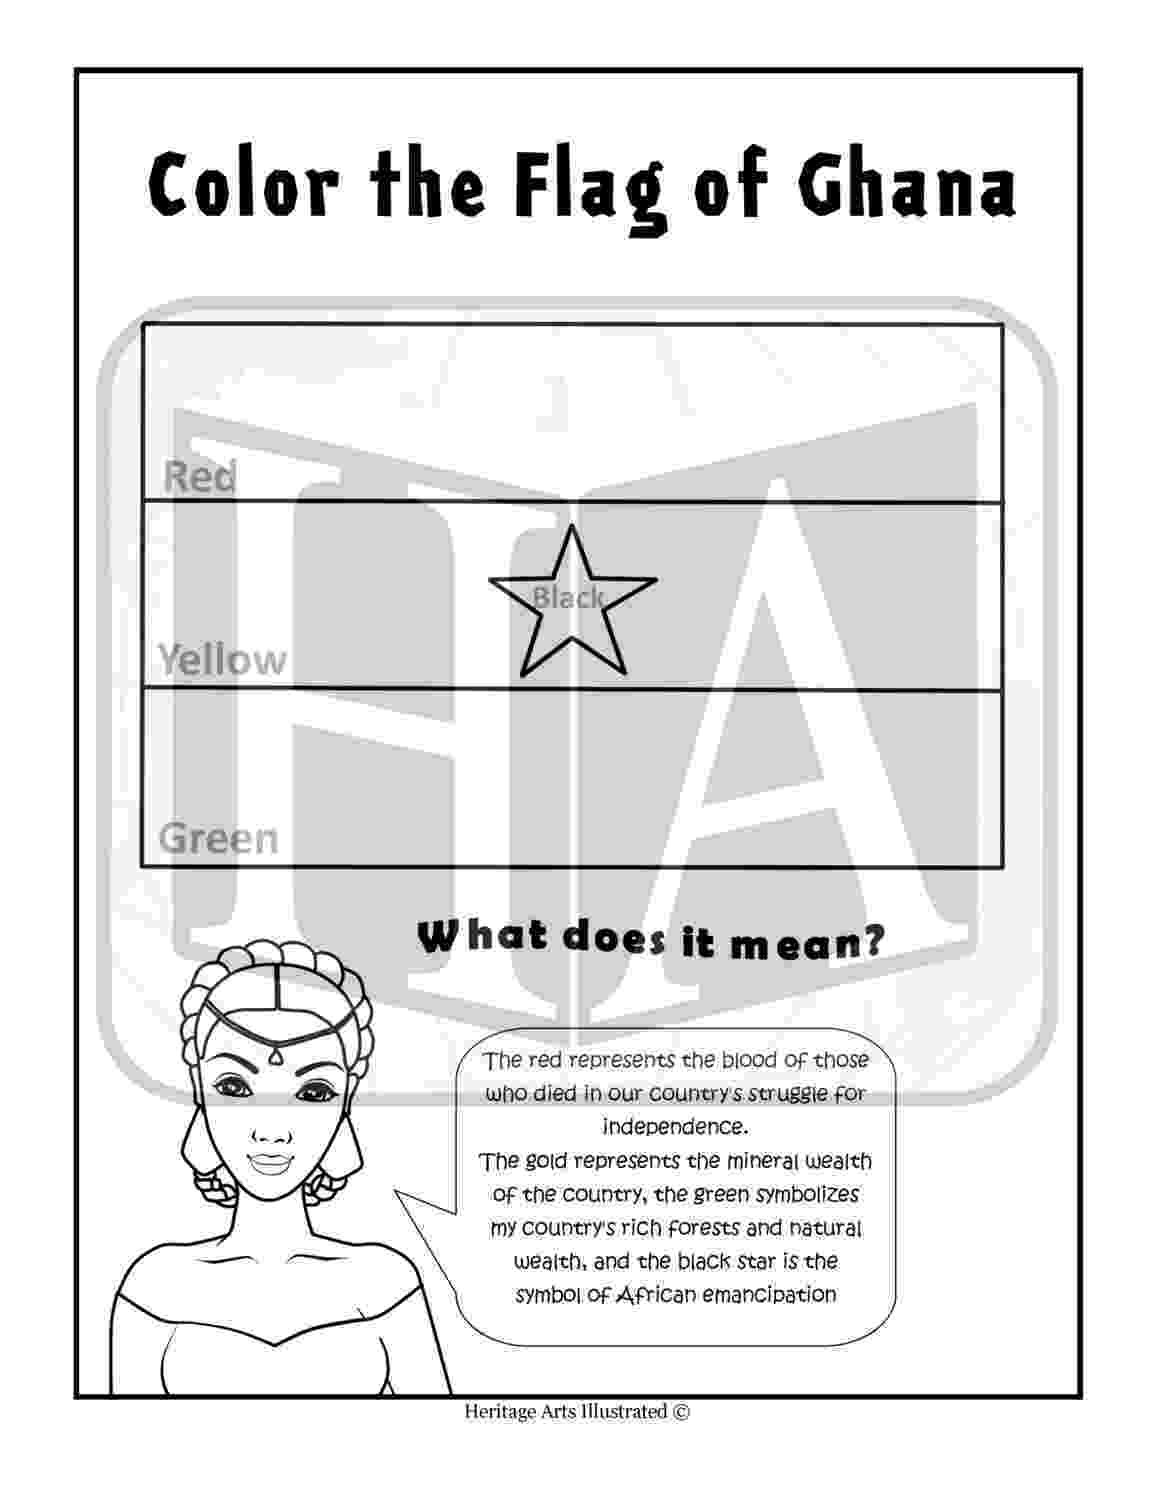 ghana flag coloring page 1 flag of ghana coloring page by heritageartsillstd on etsy ghana page coloring flag